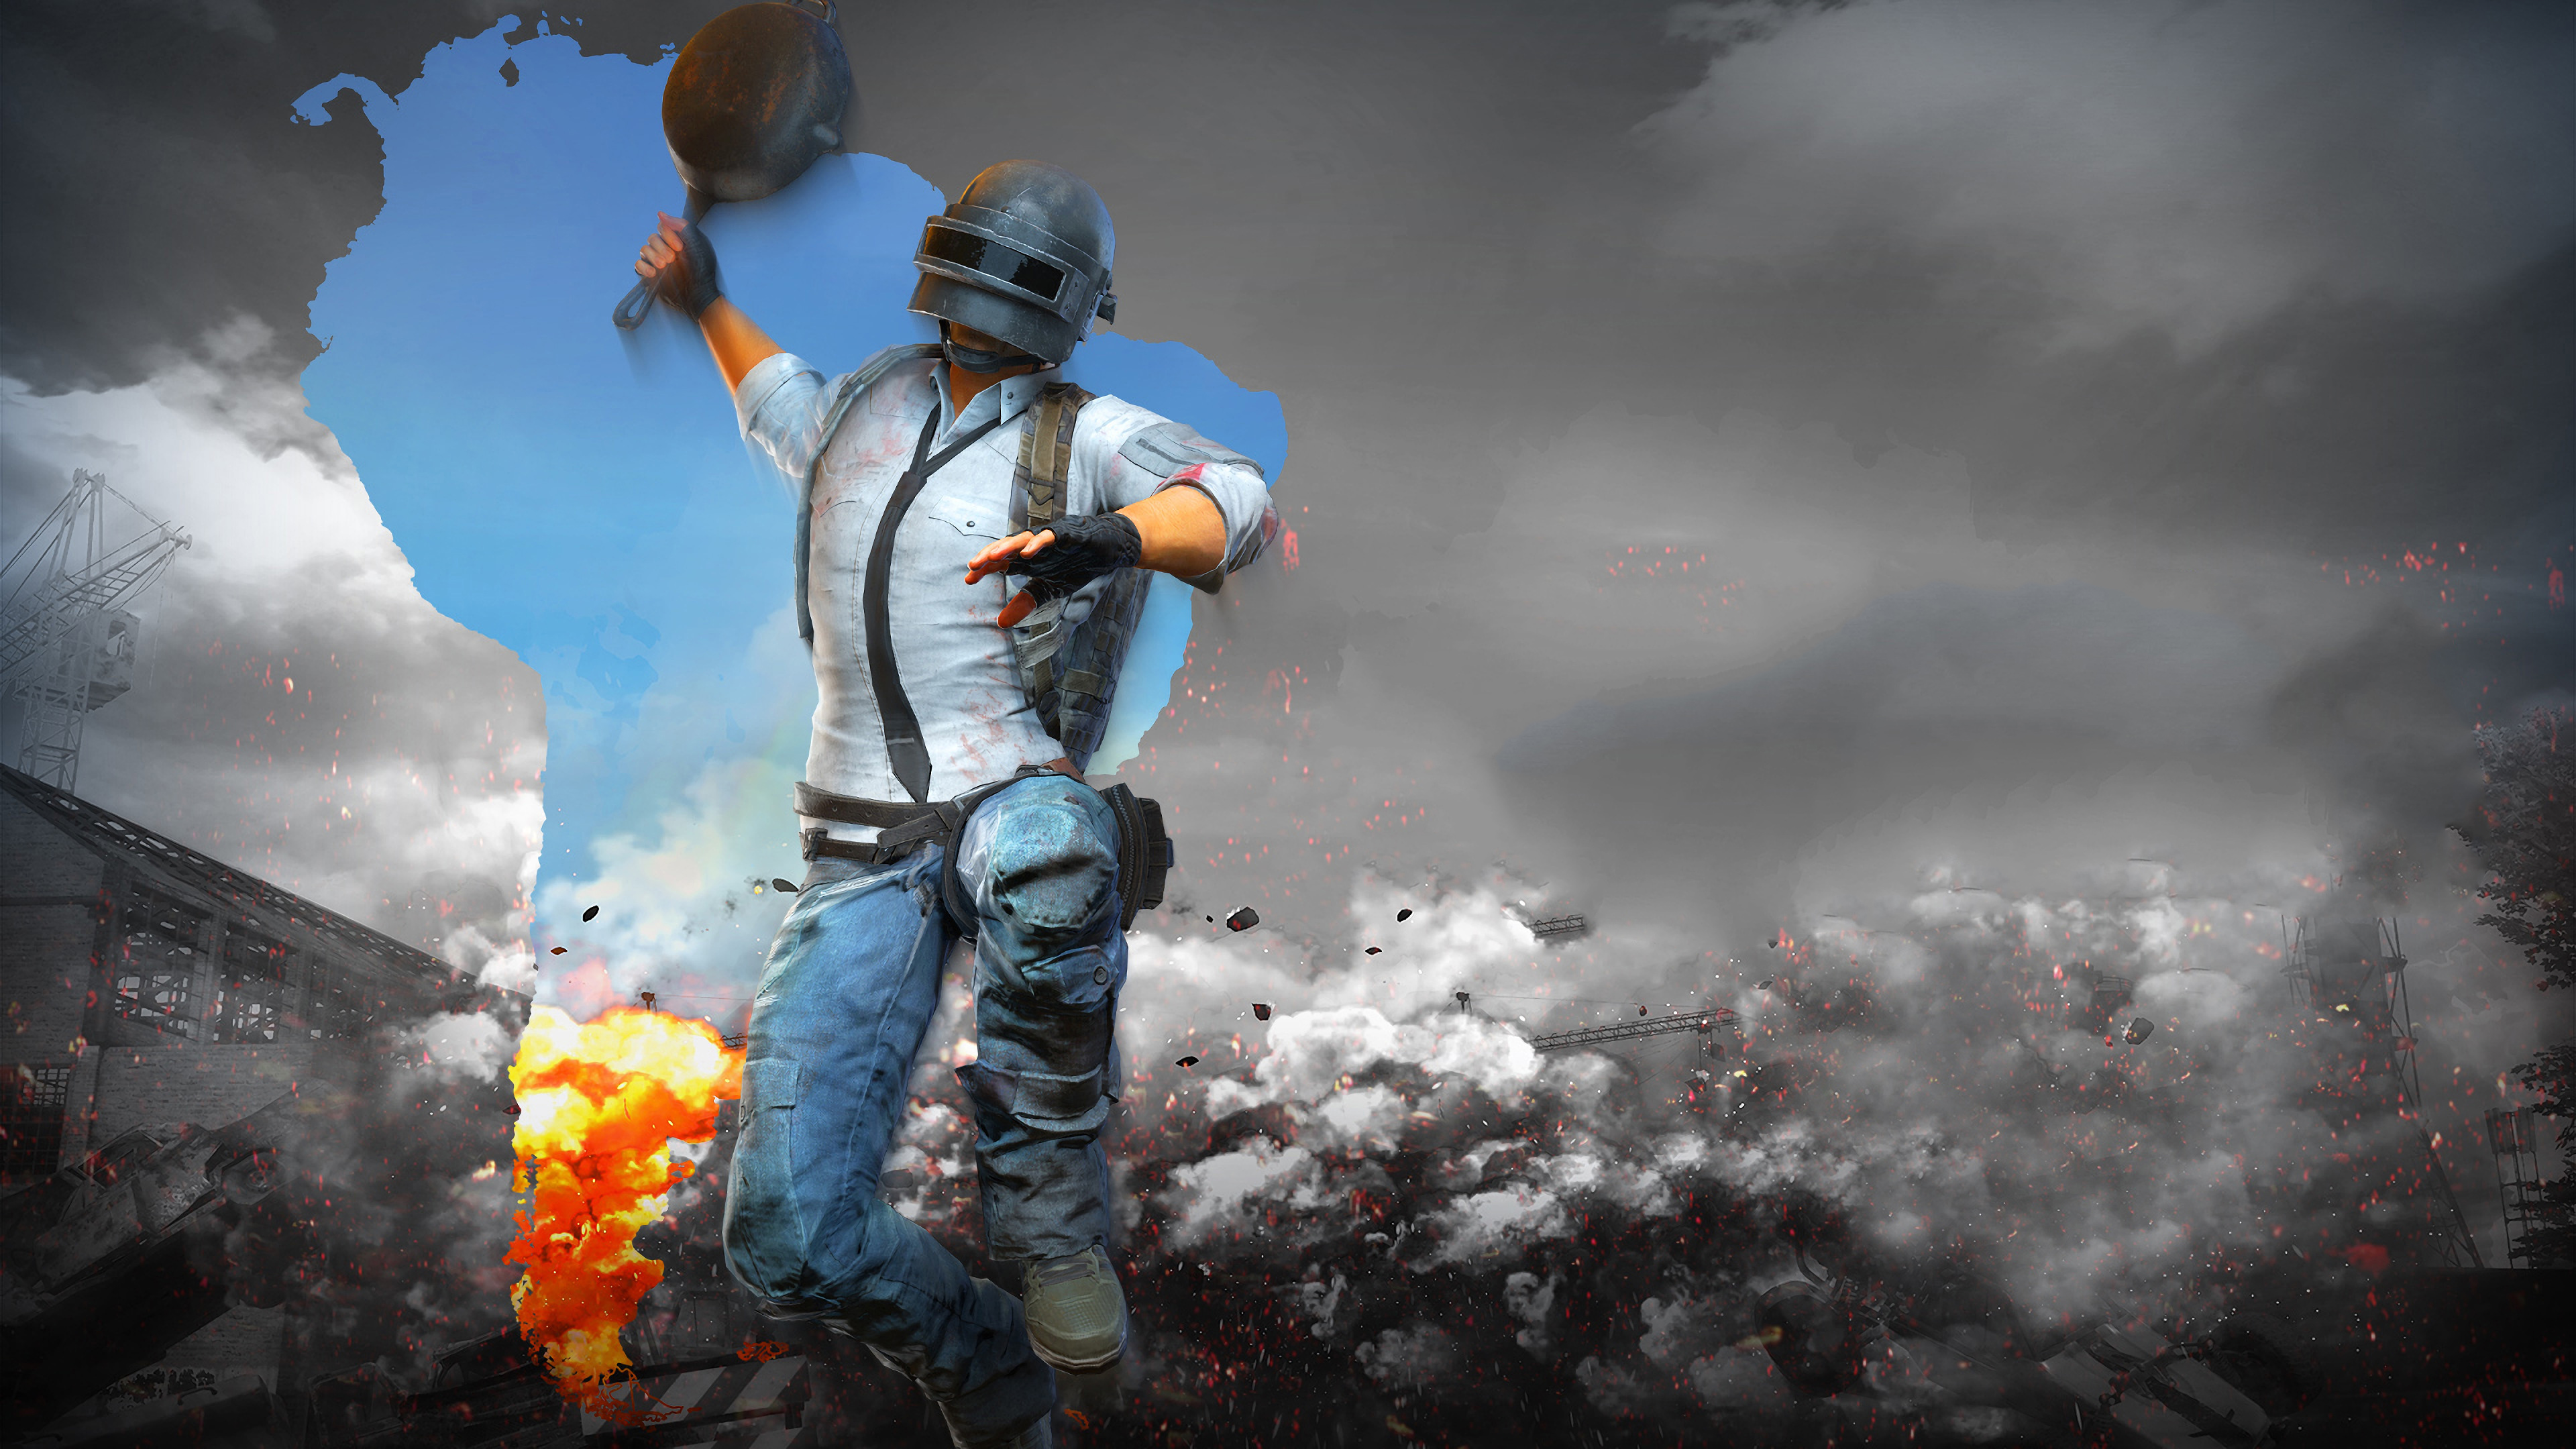 Pubg Helmet Wallpaper 4k: PUBG Helmet Man With Pan 4k, HD Games, 4k Wallpapers